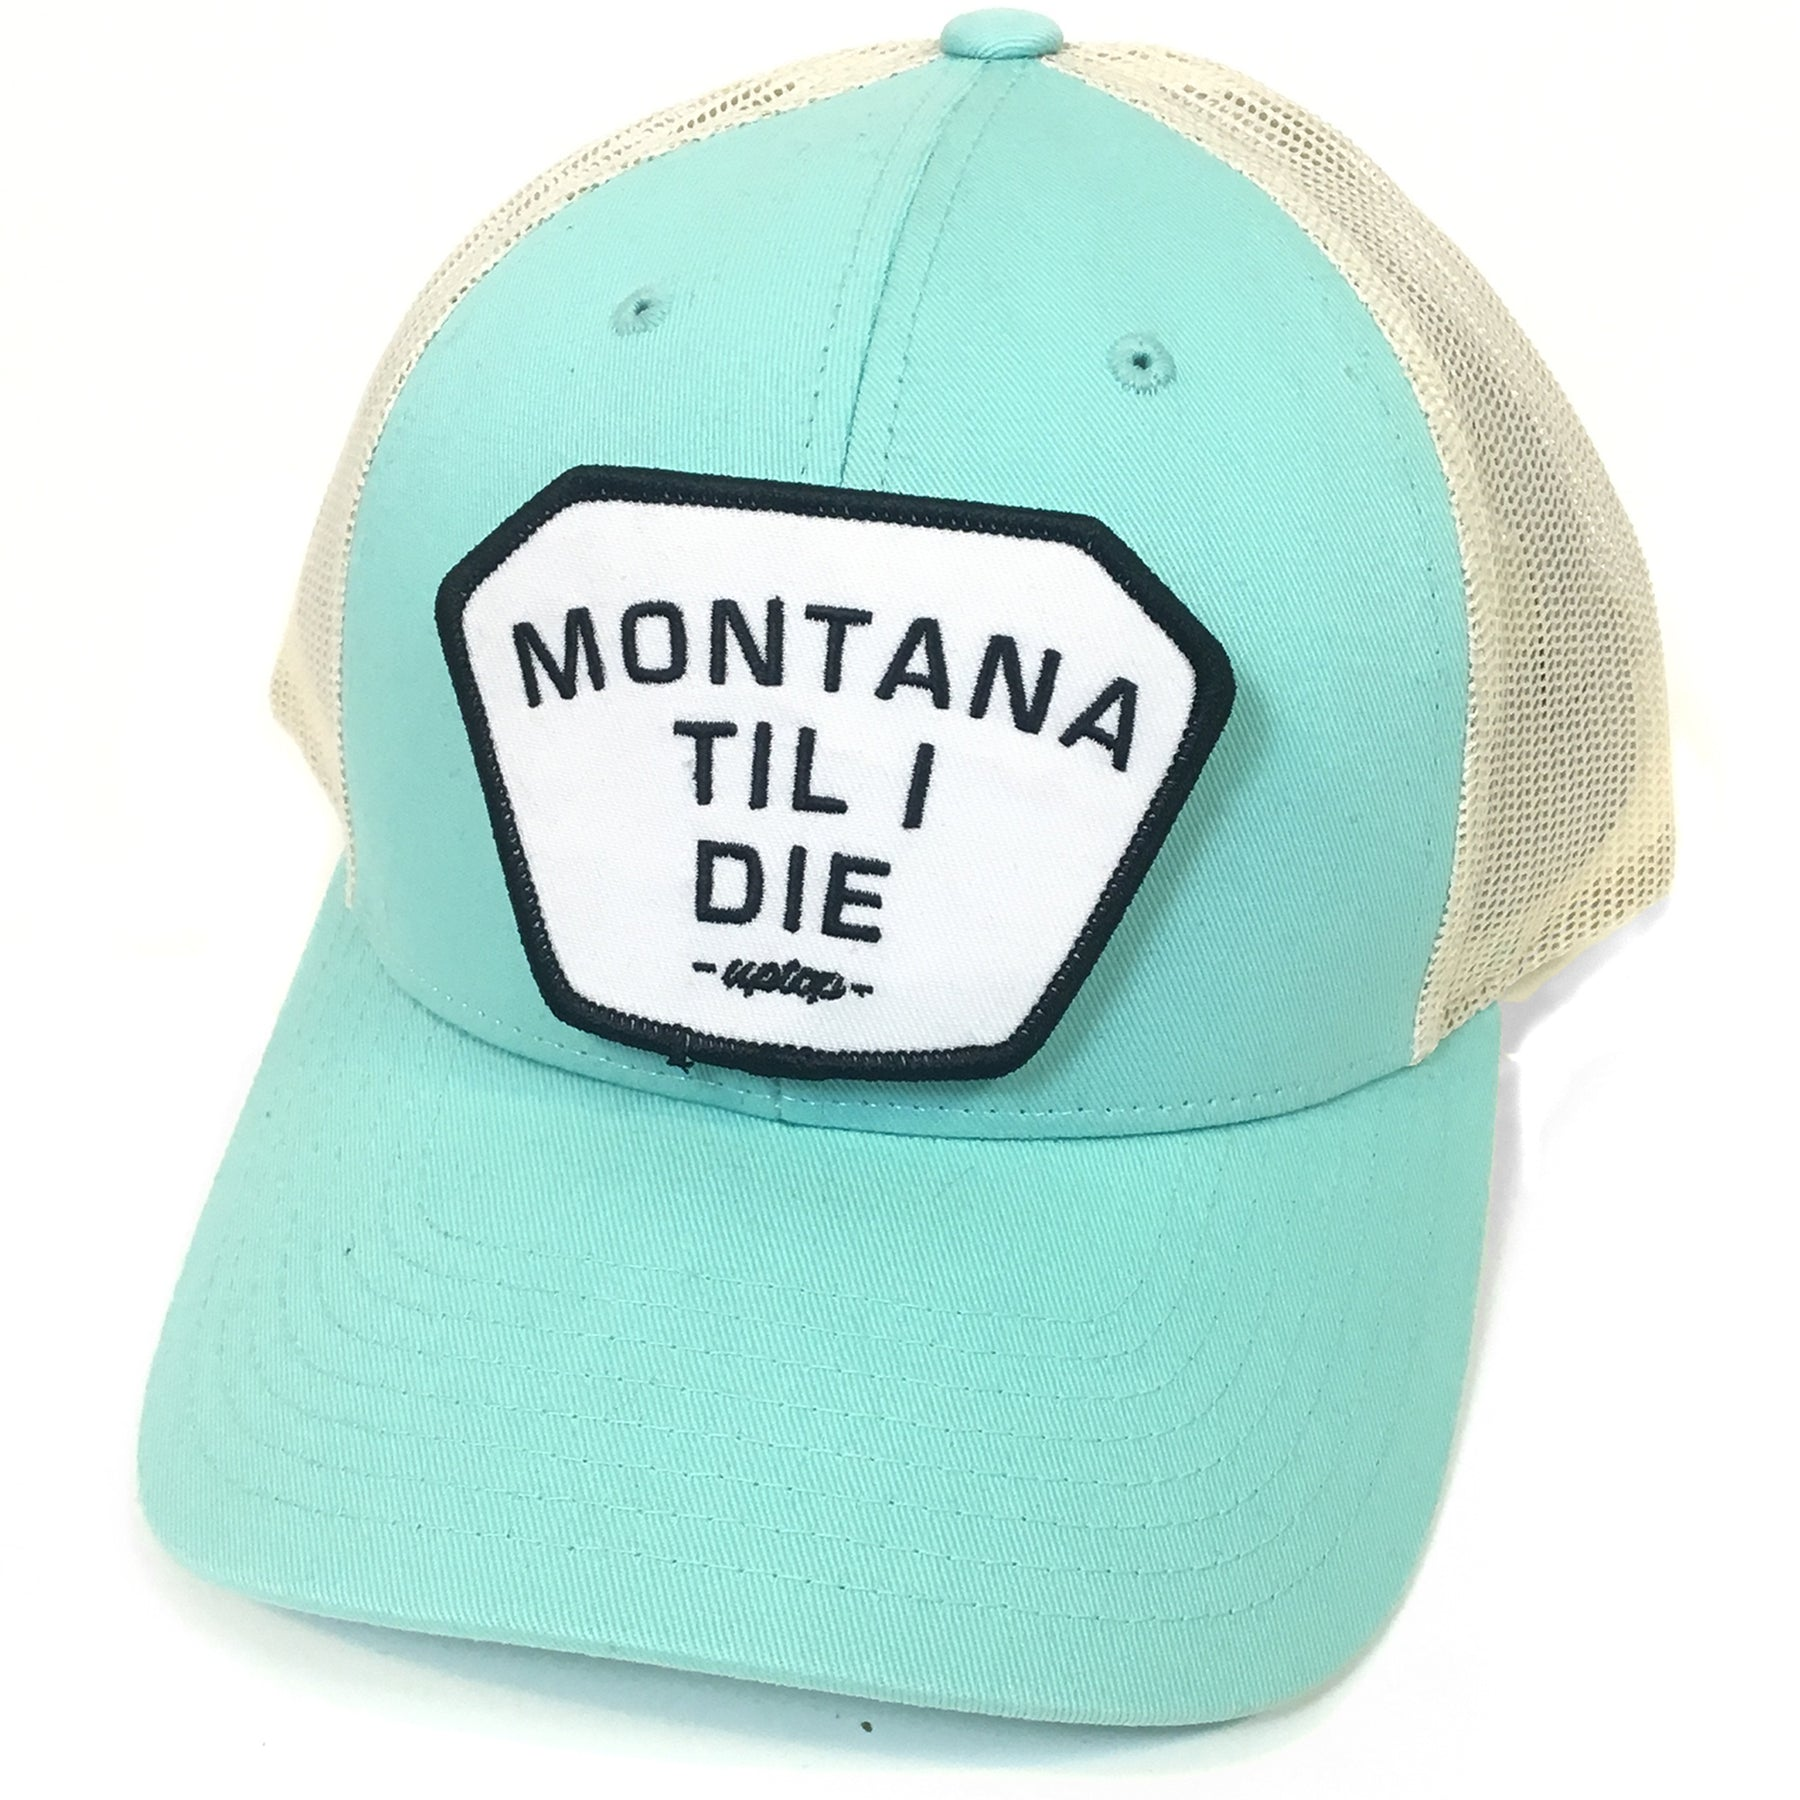 MONTANA TIL I DIE LOW PROFILE TRUCKER HAT